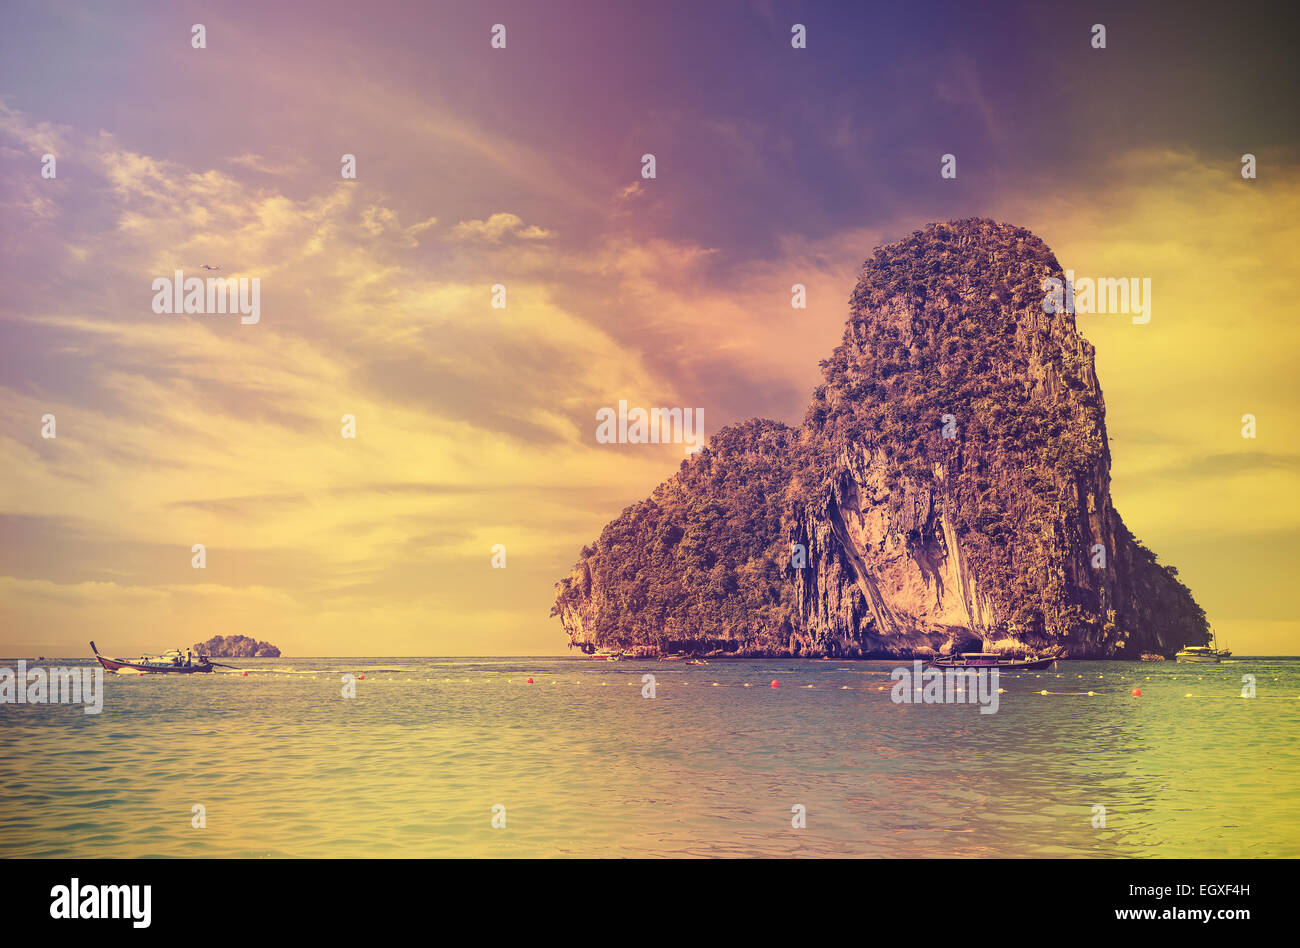 Retro vintage style filtered picture of an island at sunset. - Stock Image